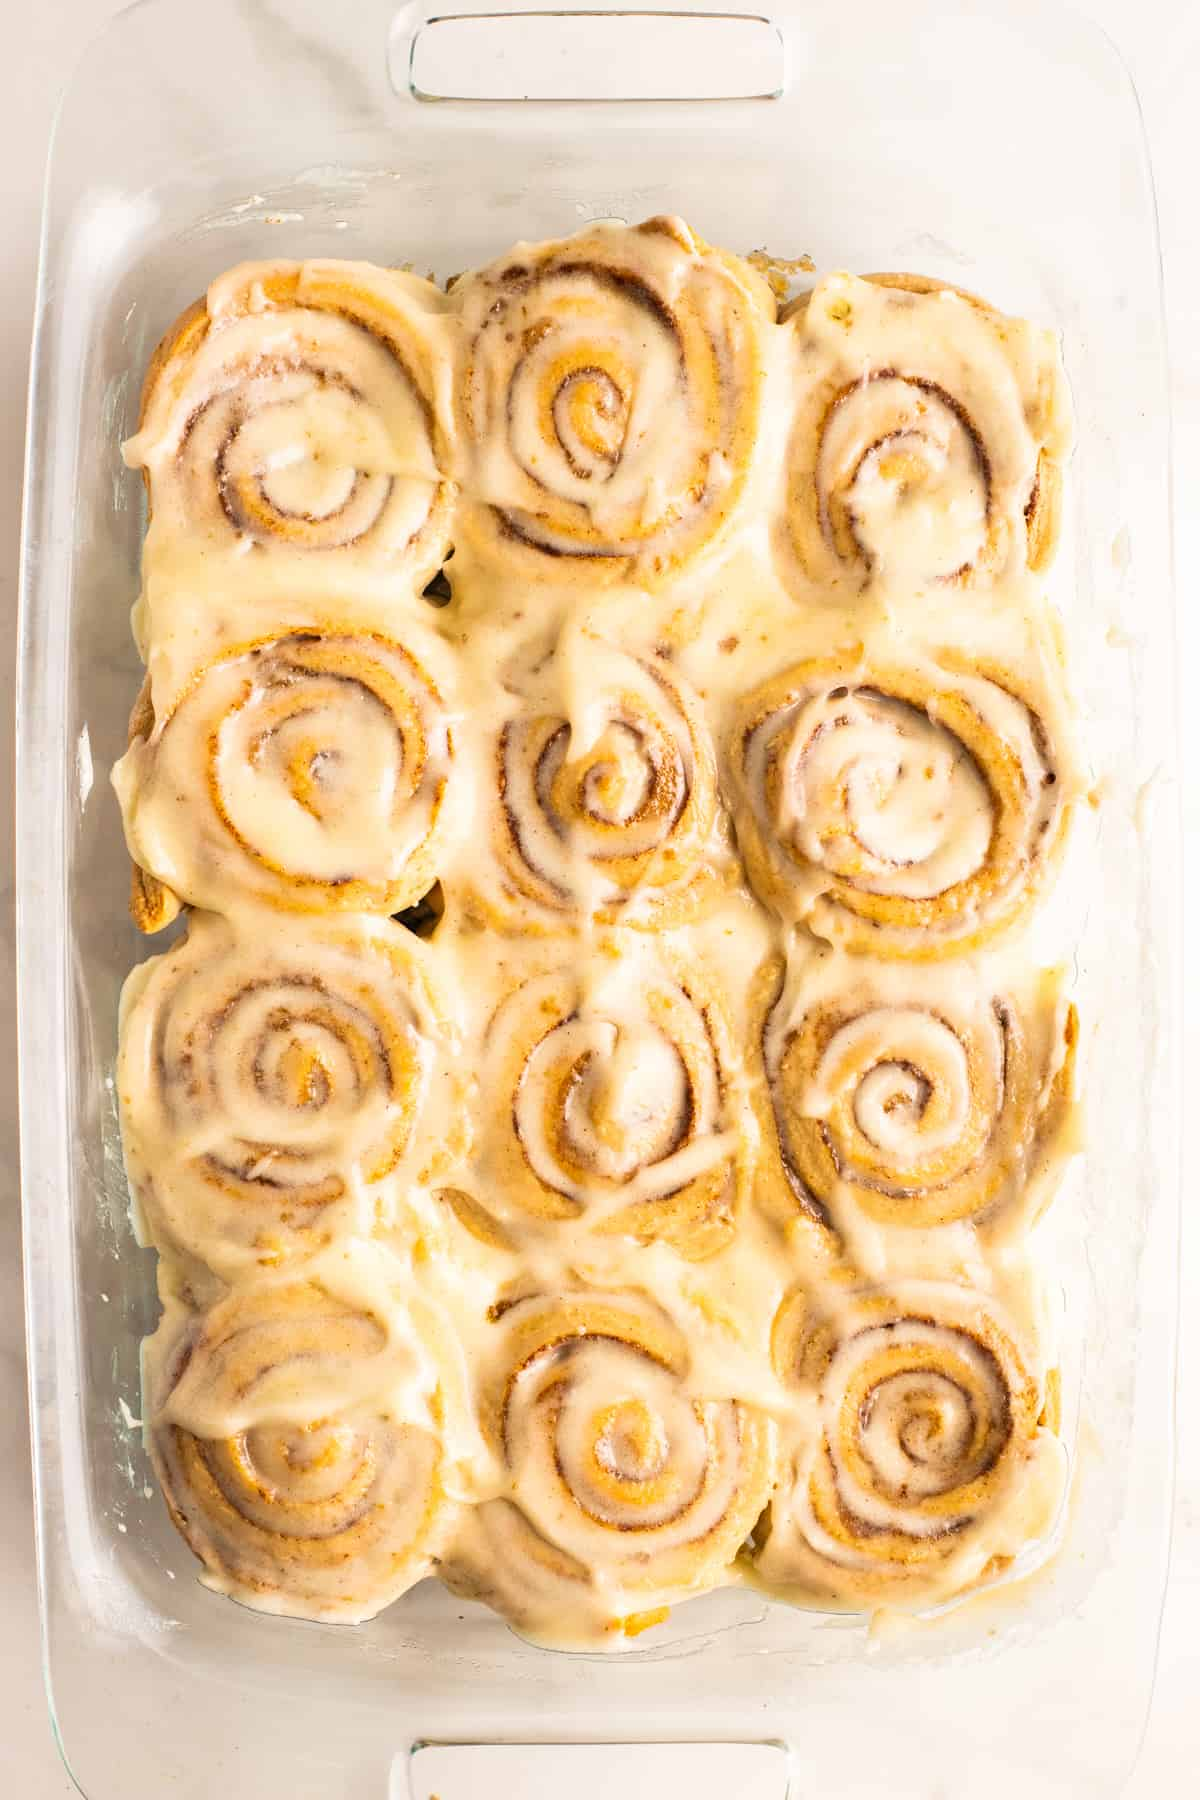 12 vegan cinnamon rolls covered with frosting in a glass dish